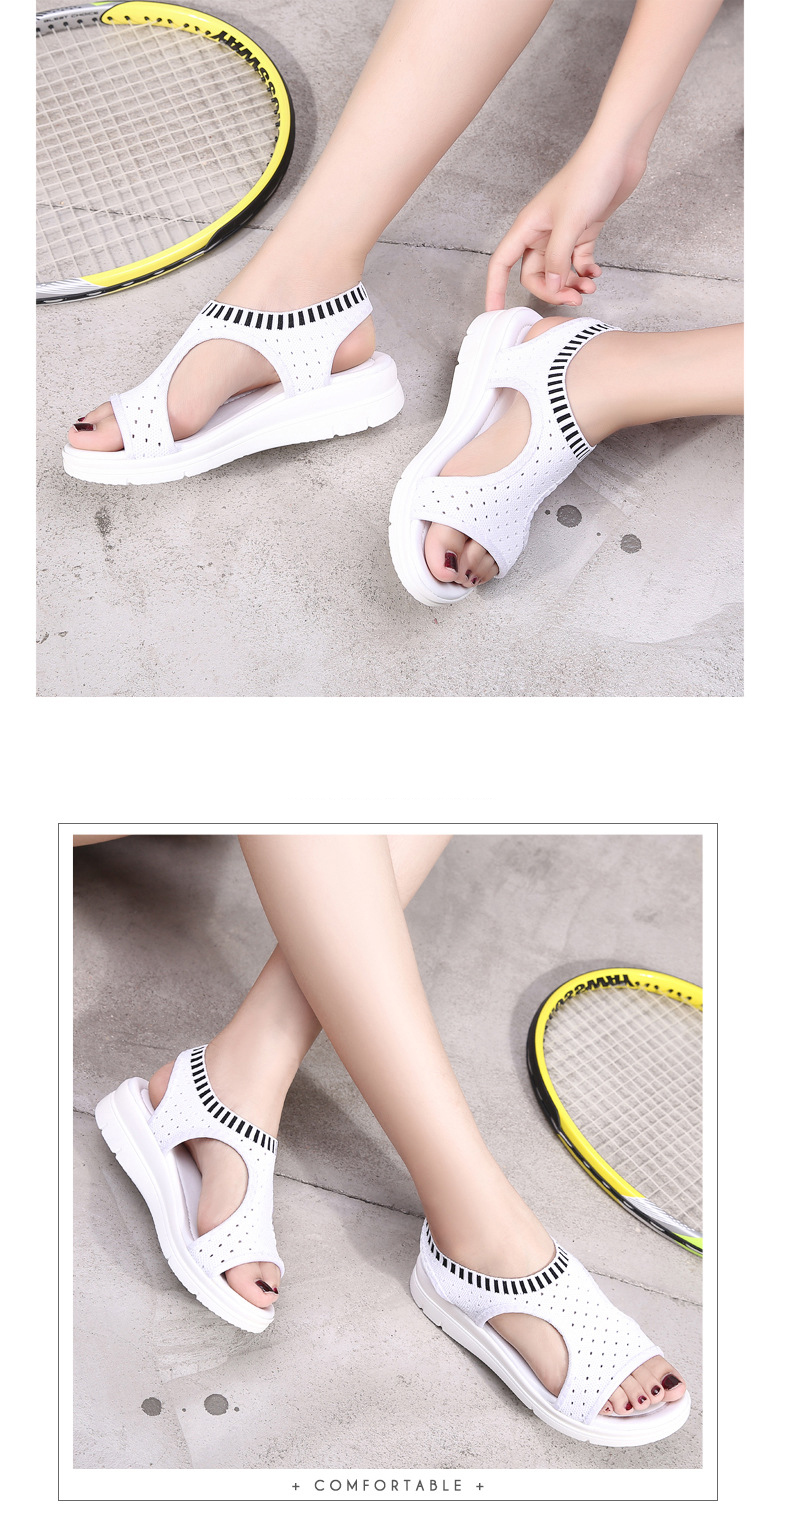 HTB1IUm1x7yWBuNjy0Fpq6yssXXaZ MLANXEUE Fashion Women Sandals For 2019 Breathable Comfort Shopping Ladies Walking Shoes Summer Platform Black Sandal Shoes